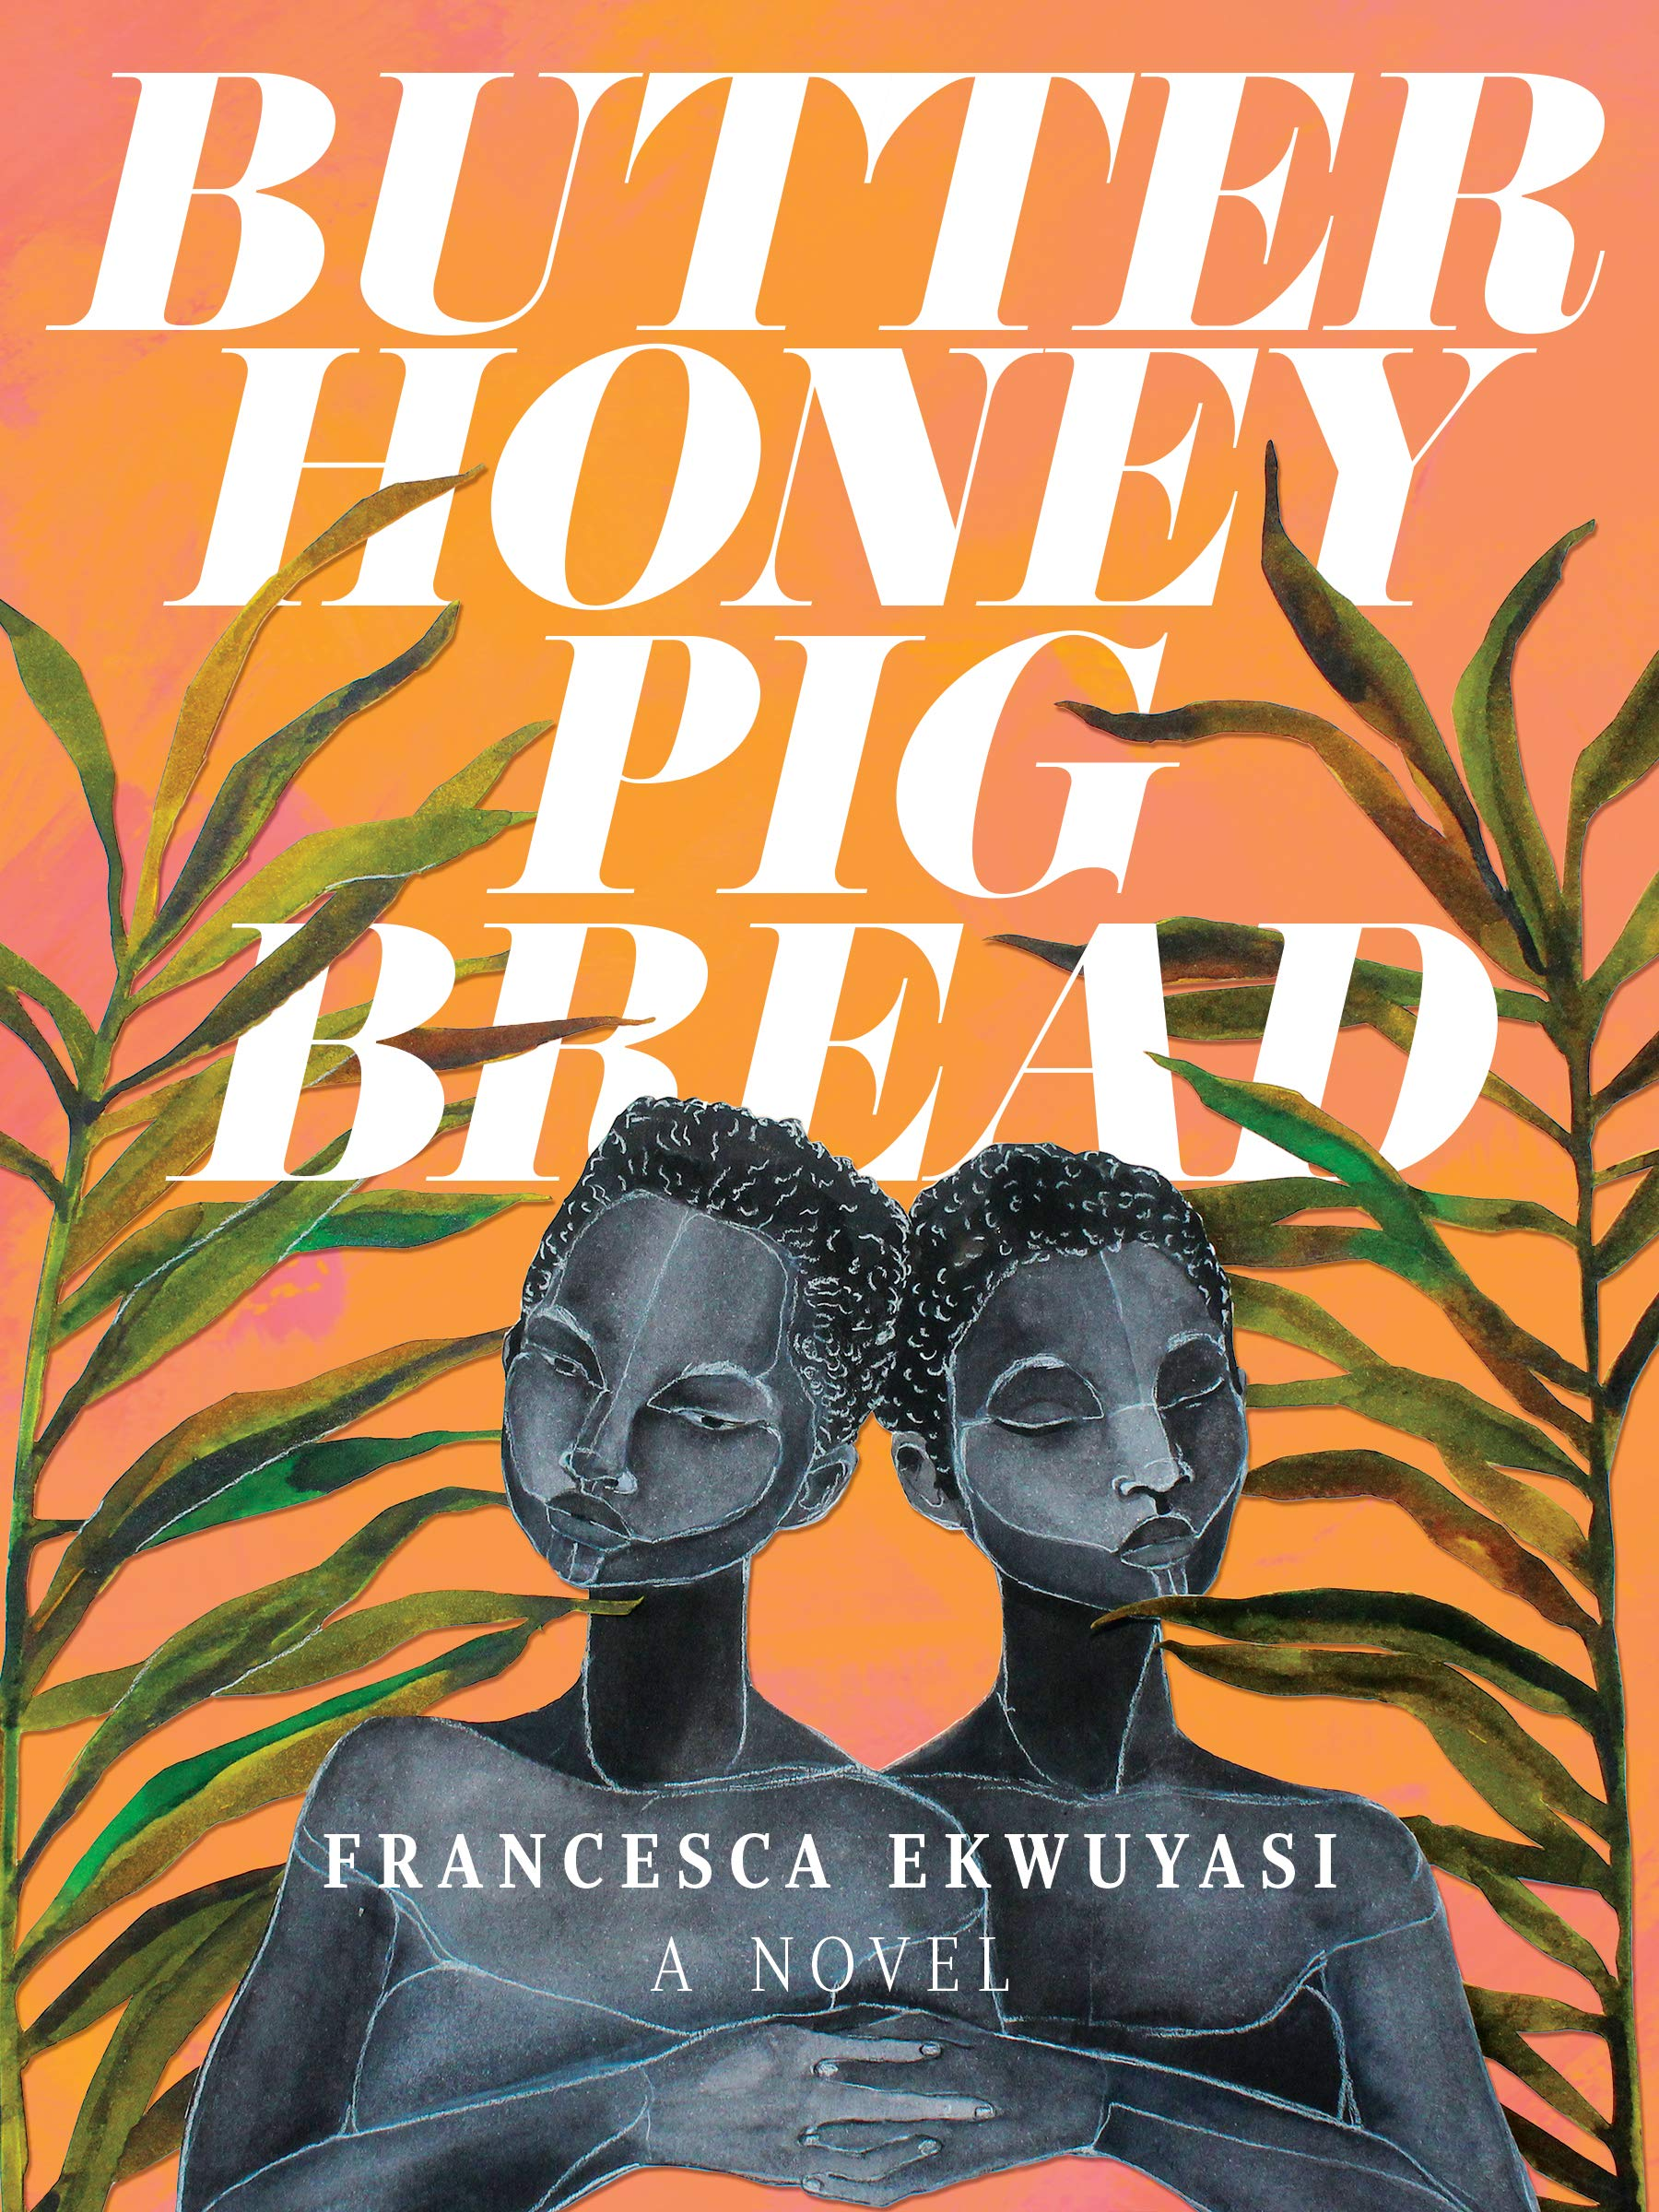 Two angular, sketched black women clasp hands. Plant fronds flank them. Butter honey pig bread by Francesca Ekwuyasi